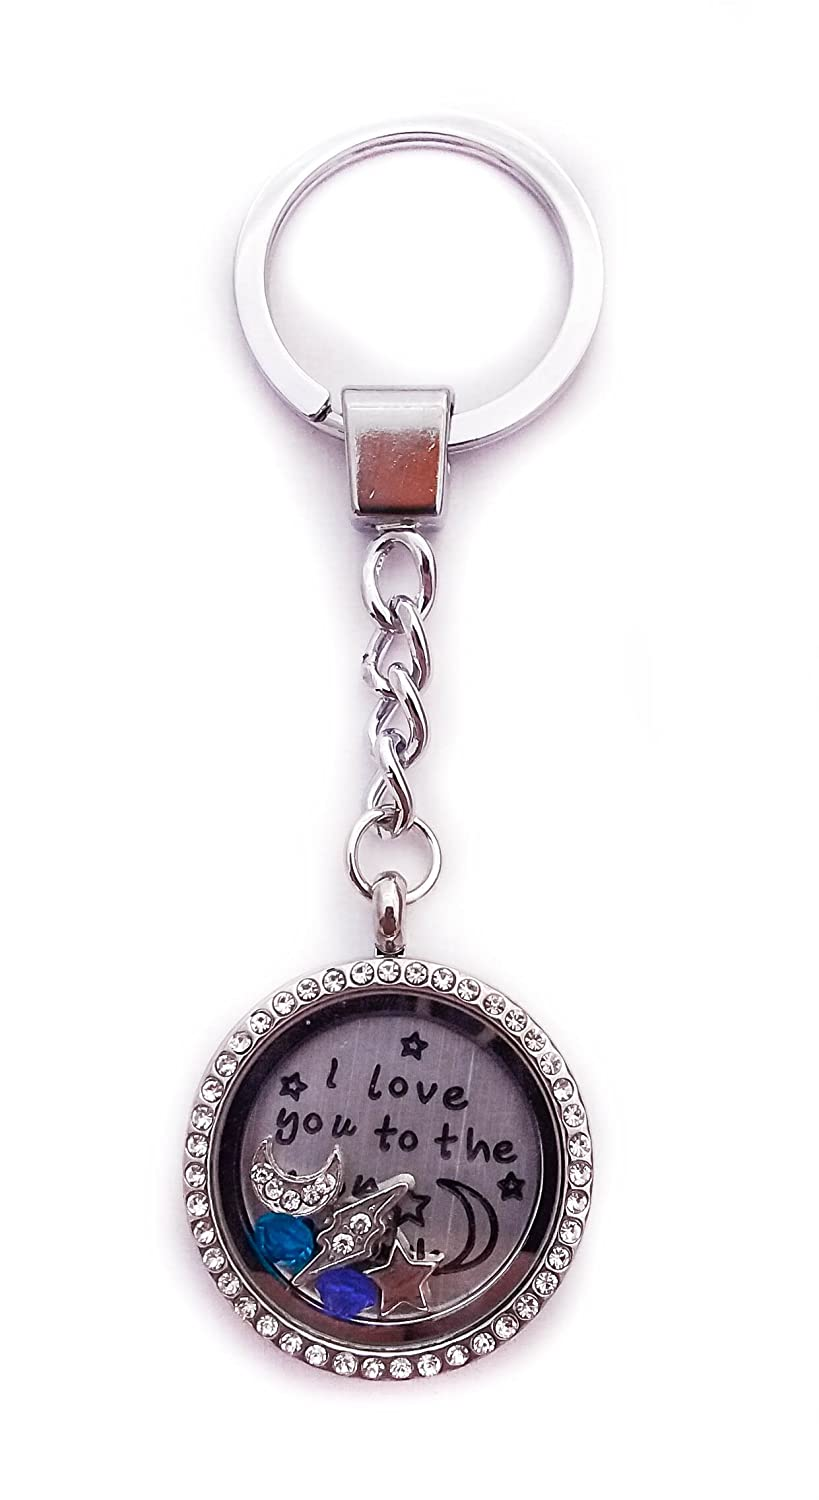 """I Love You to the Moon and Back"" By Living Memory Lockets for Less Floating Charm Keychain Key Chain Mom or Grandma"